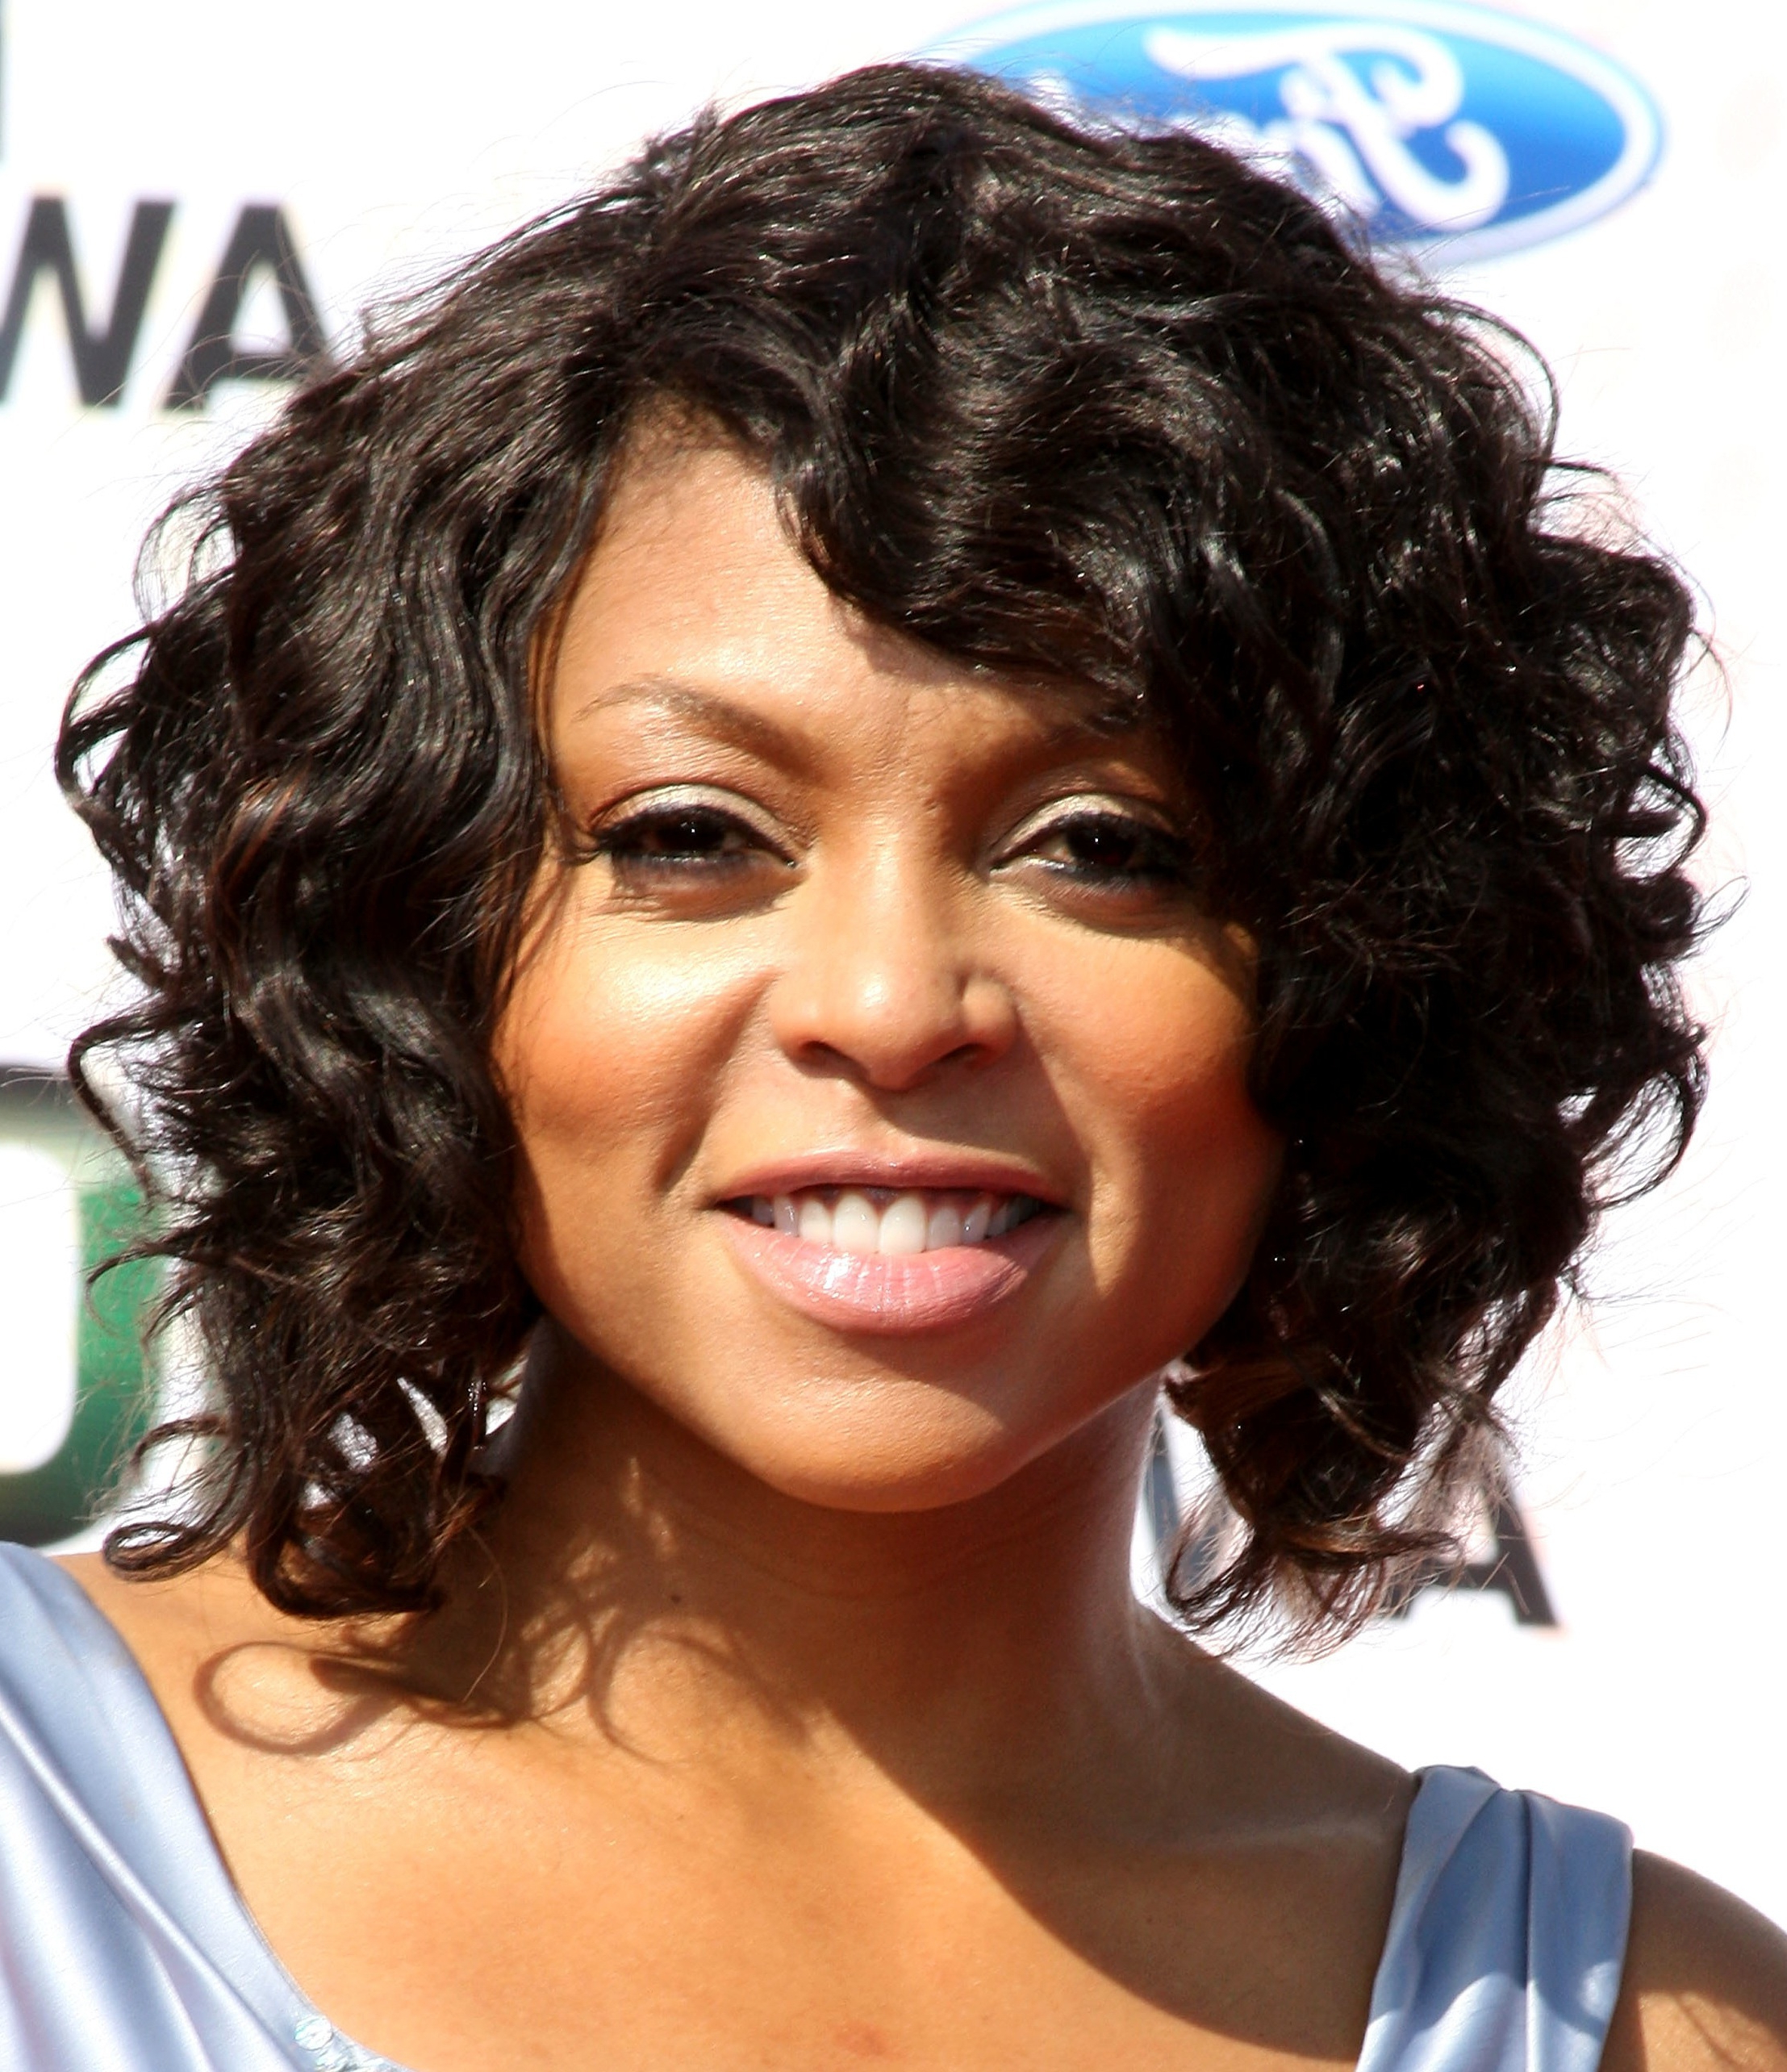 Short Curly Hairstyles For Black Women With Round Faces – Hairstyle In Short Hairstyles For Black Round Faces (View 15 of 25)